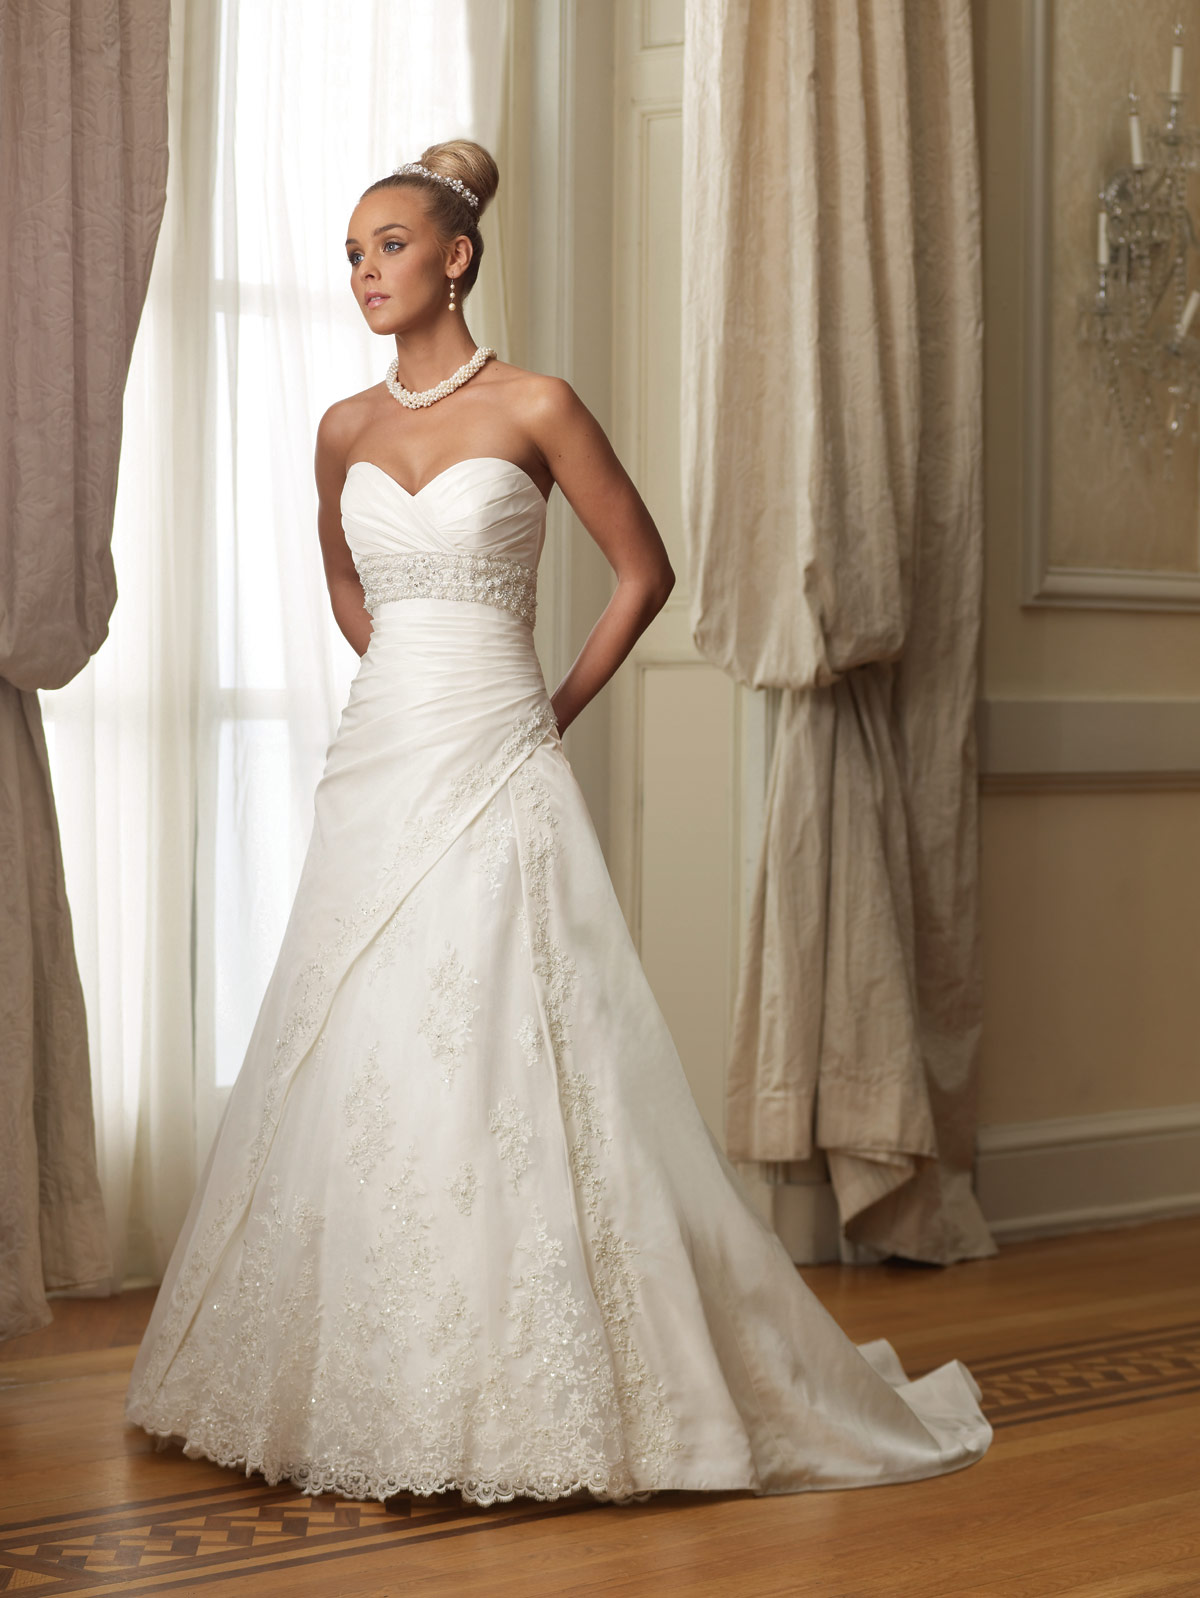 sweetheart wedding dresses types of sweetheart wedding dresses careyfashion 7871